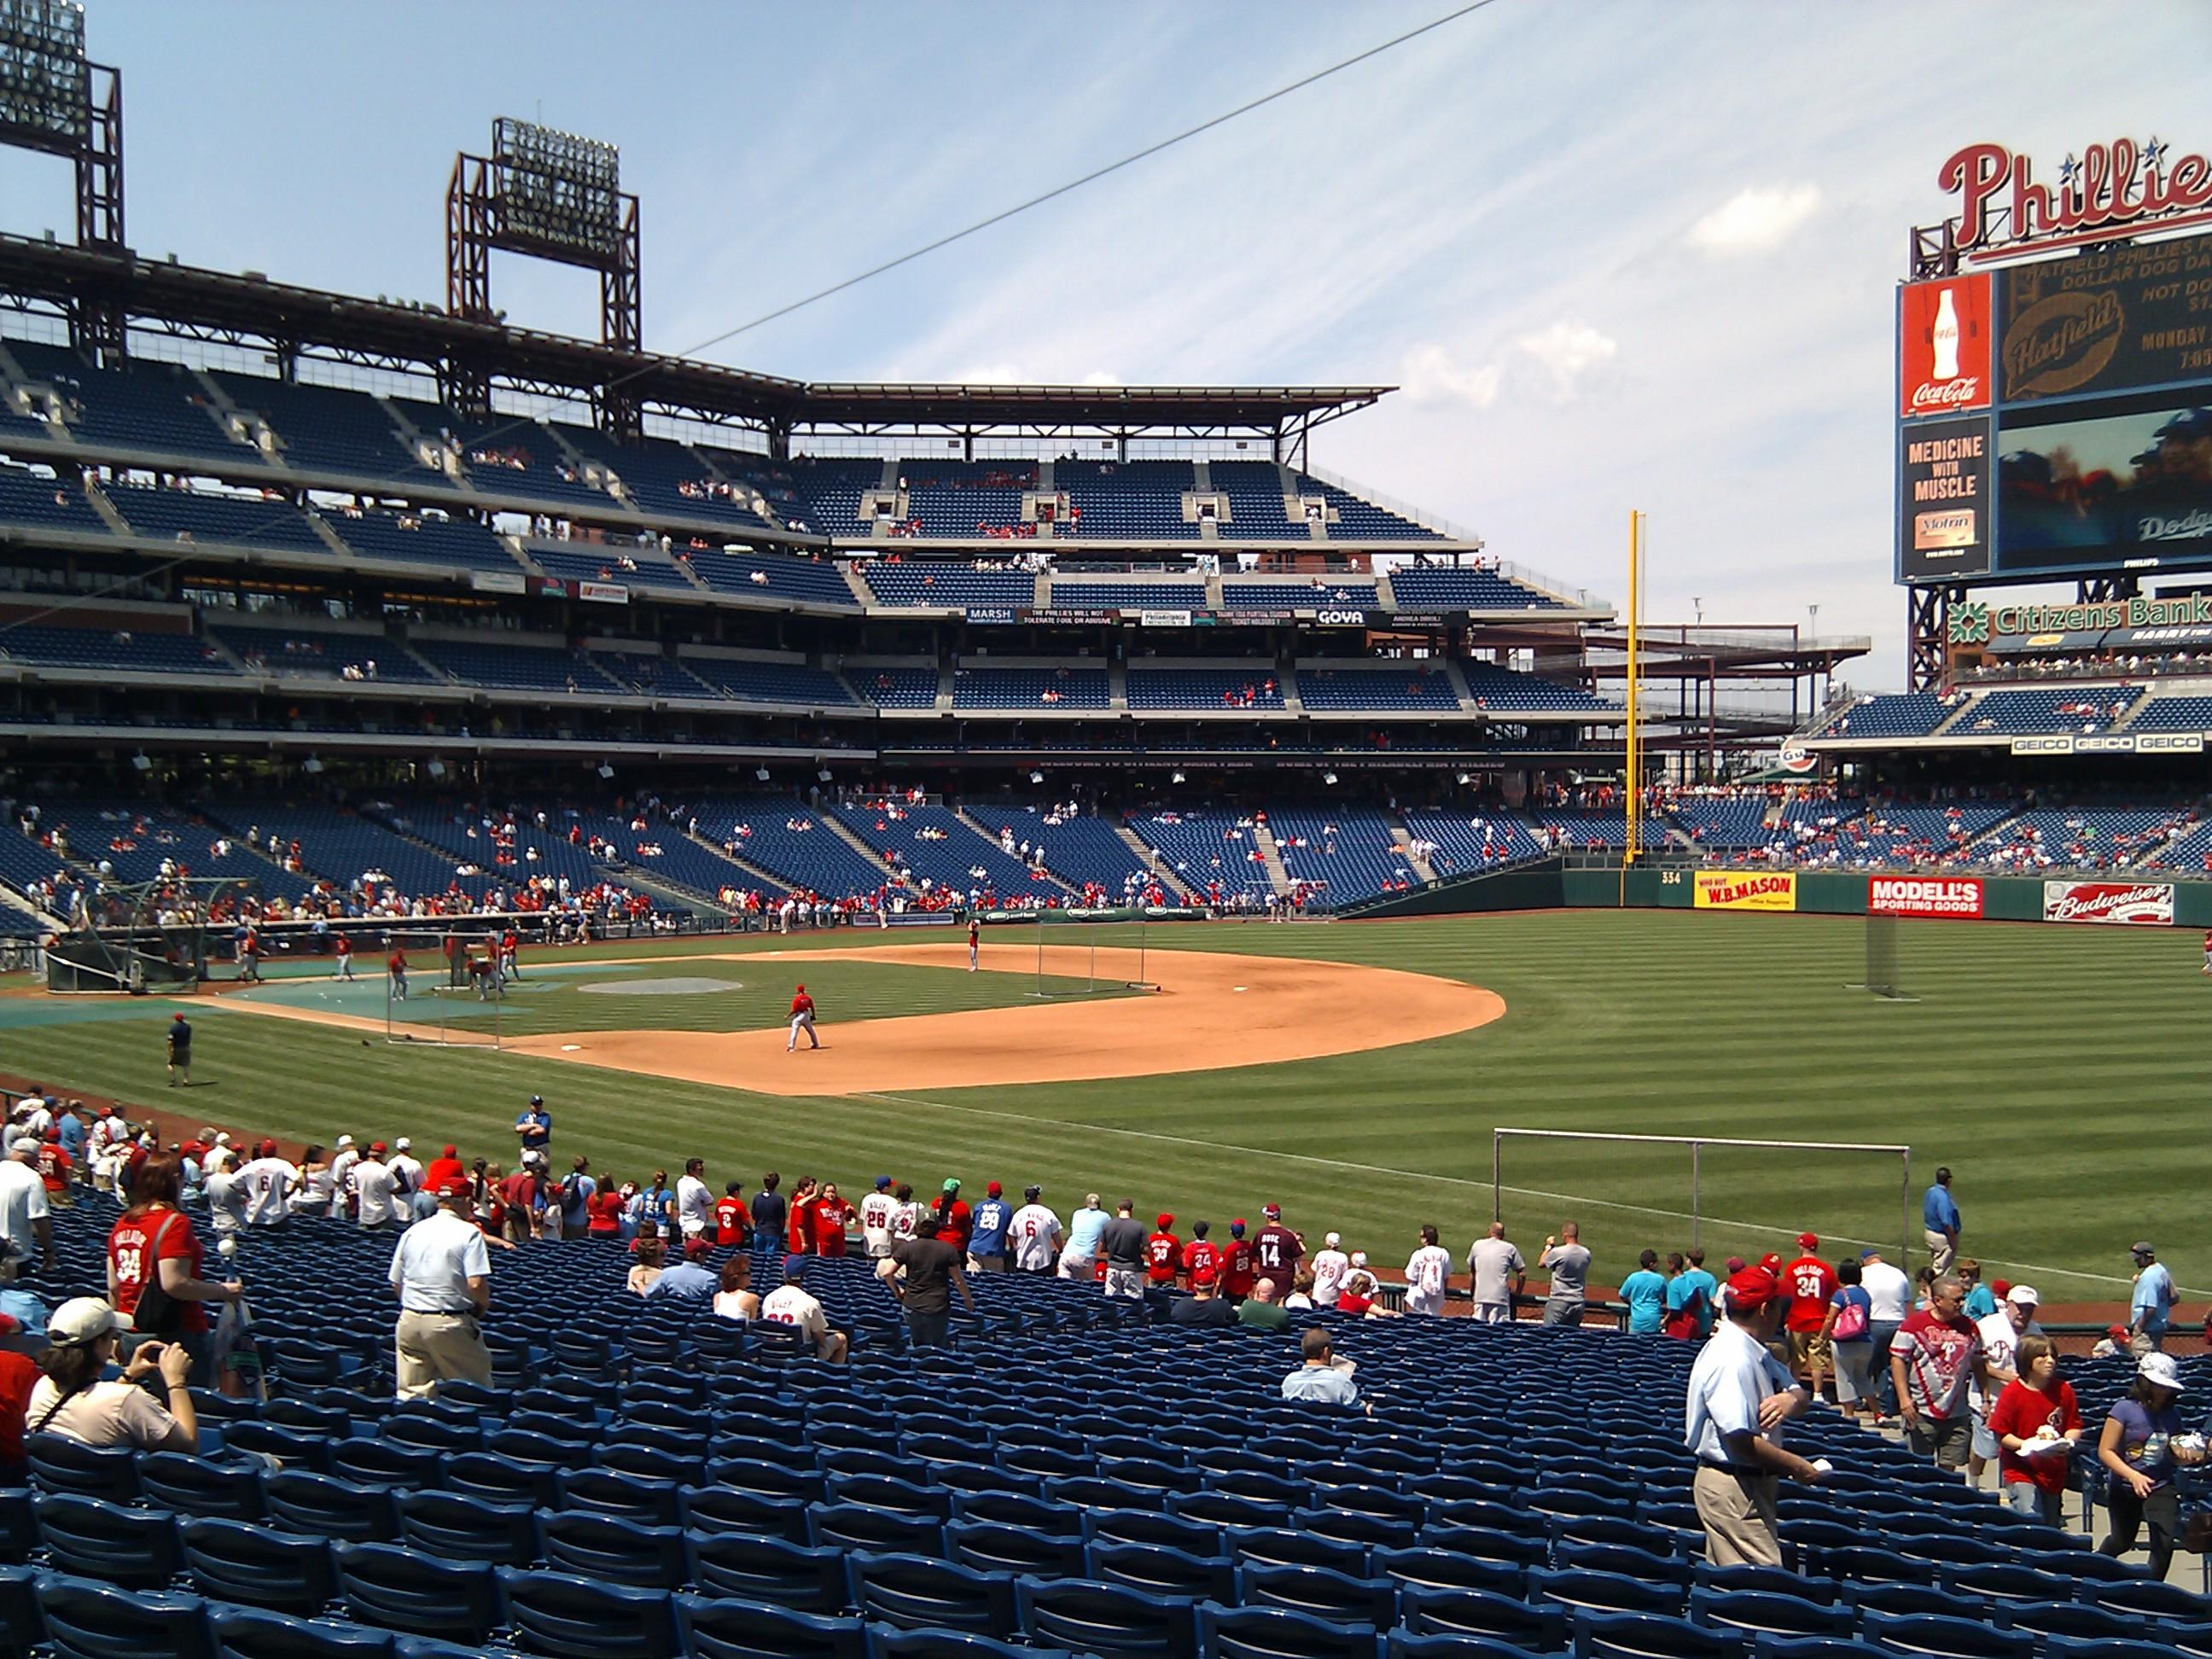 Citizens Bank Park Section 111 Row 30 Seat 6